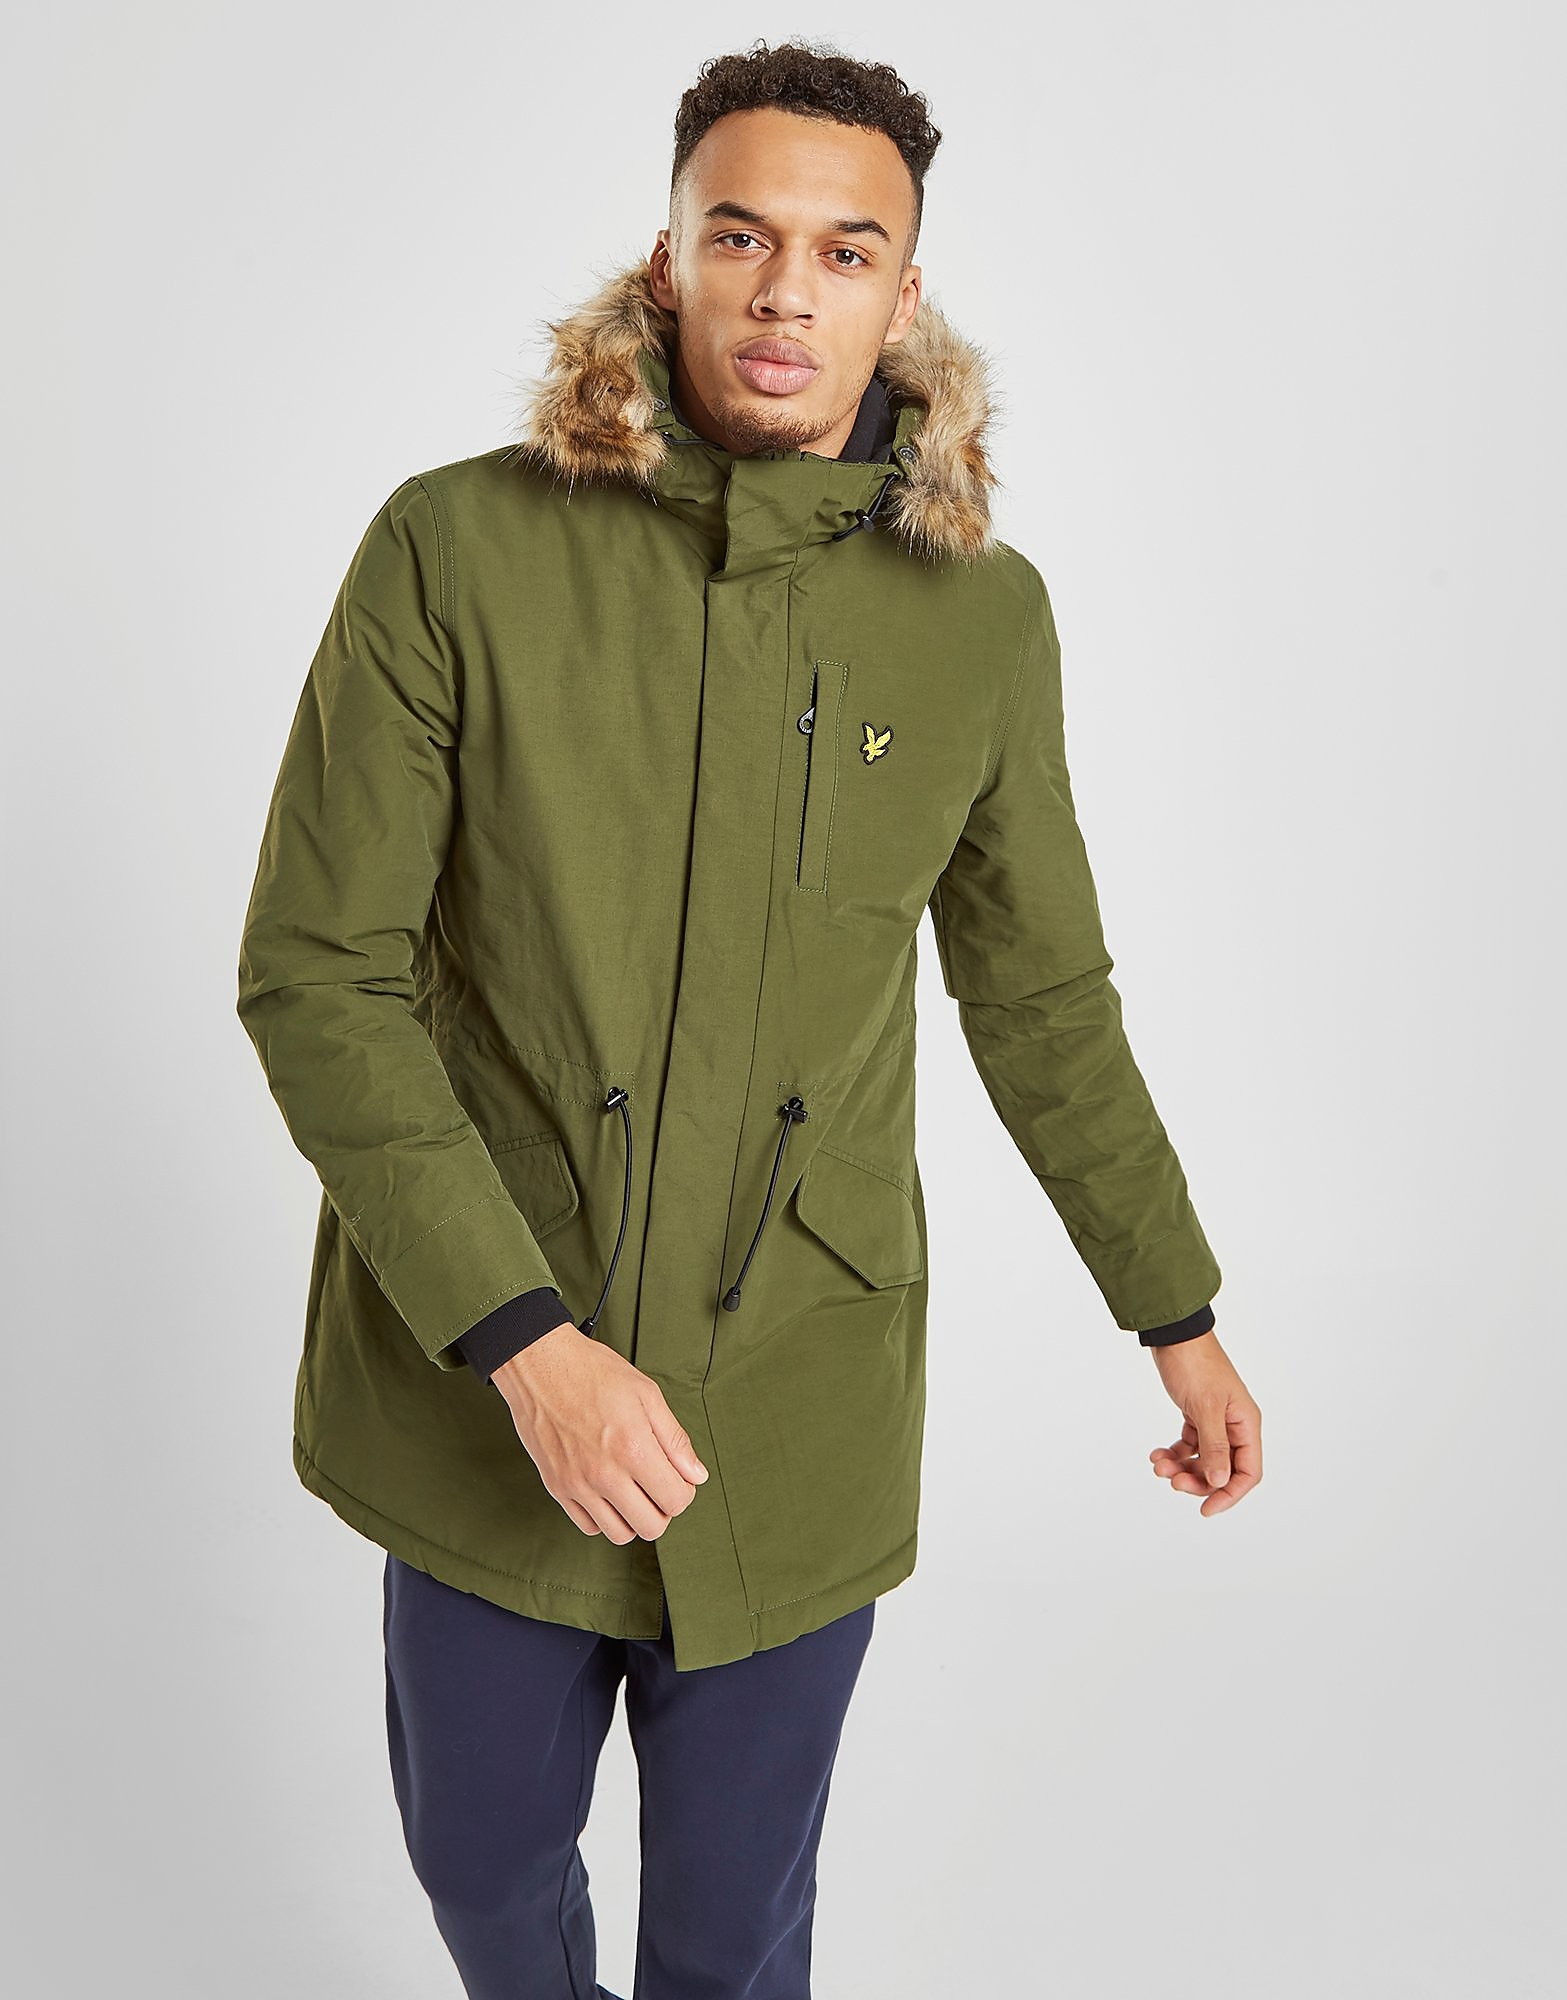 Lyle & Scott Parka Jacket Heren - Groen - Heren